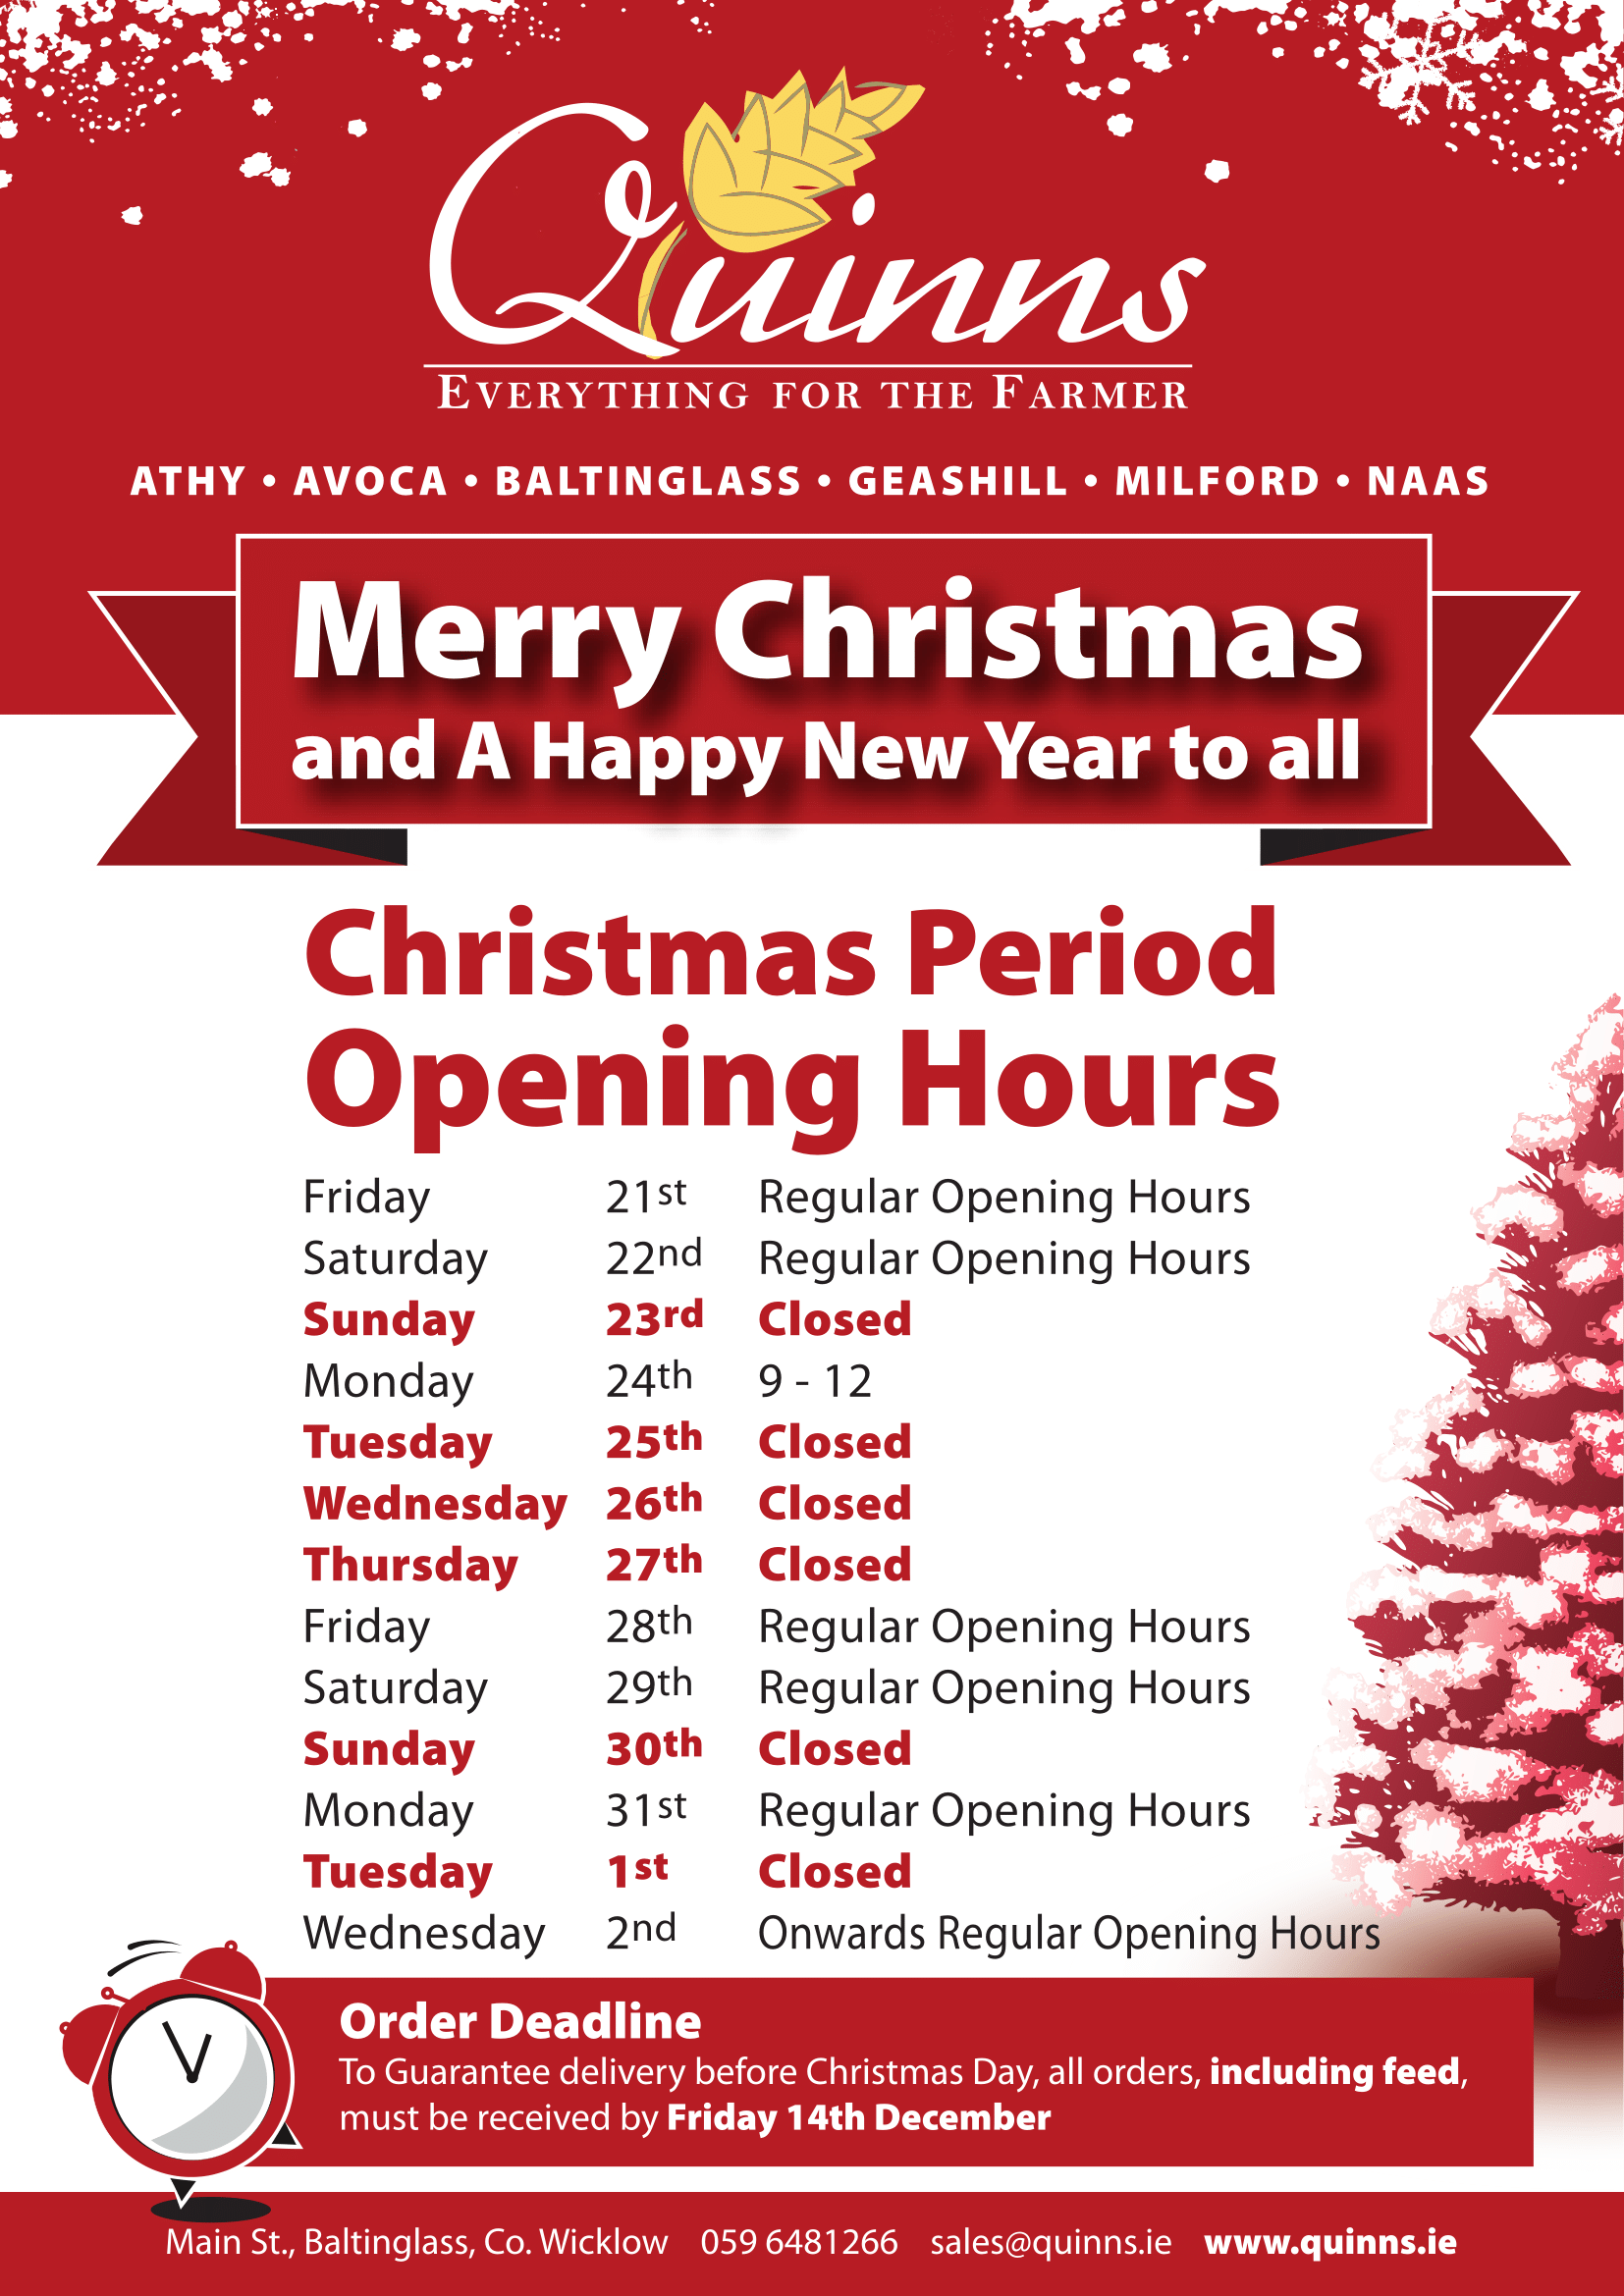 Quinns Christmas Opening Hours 2018 A4 copy-1